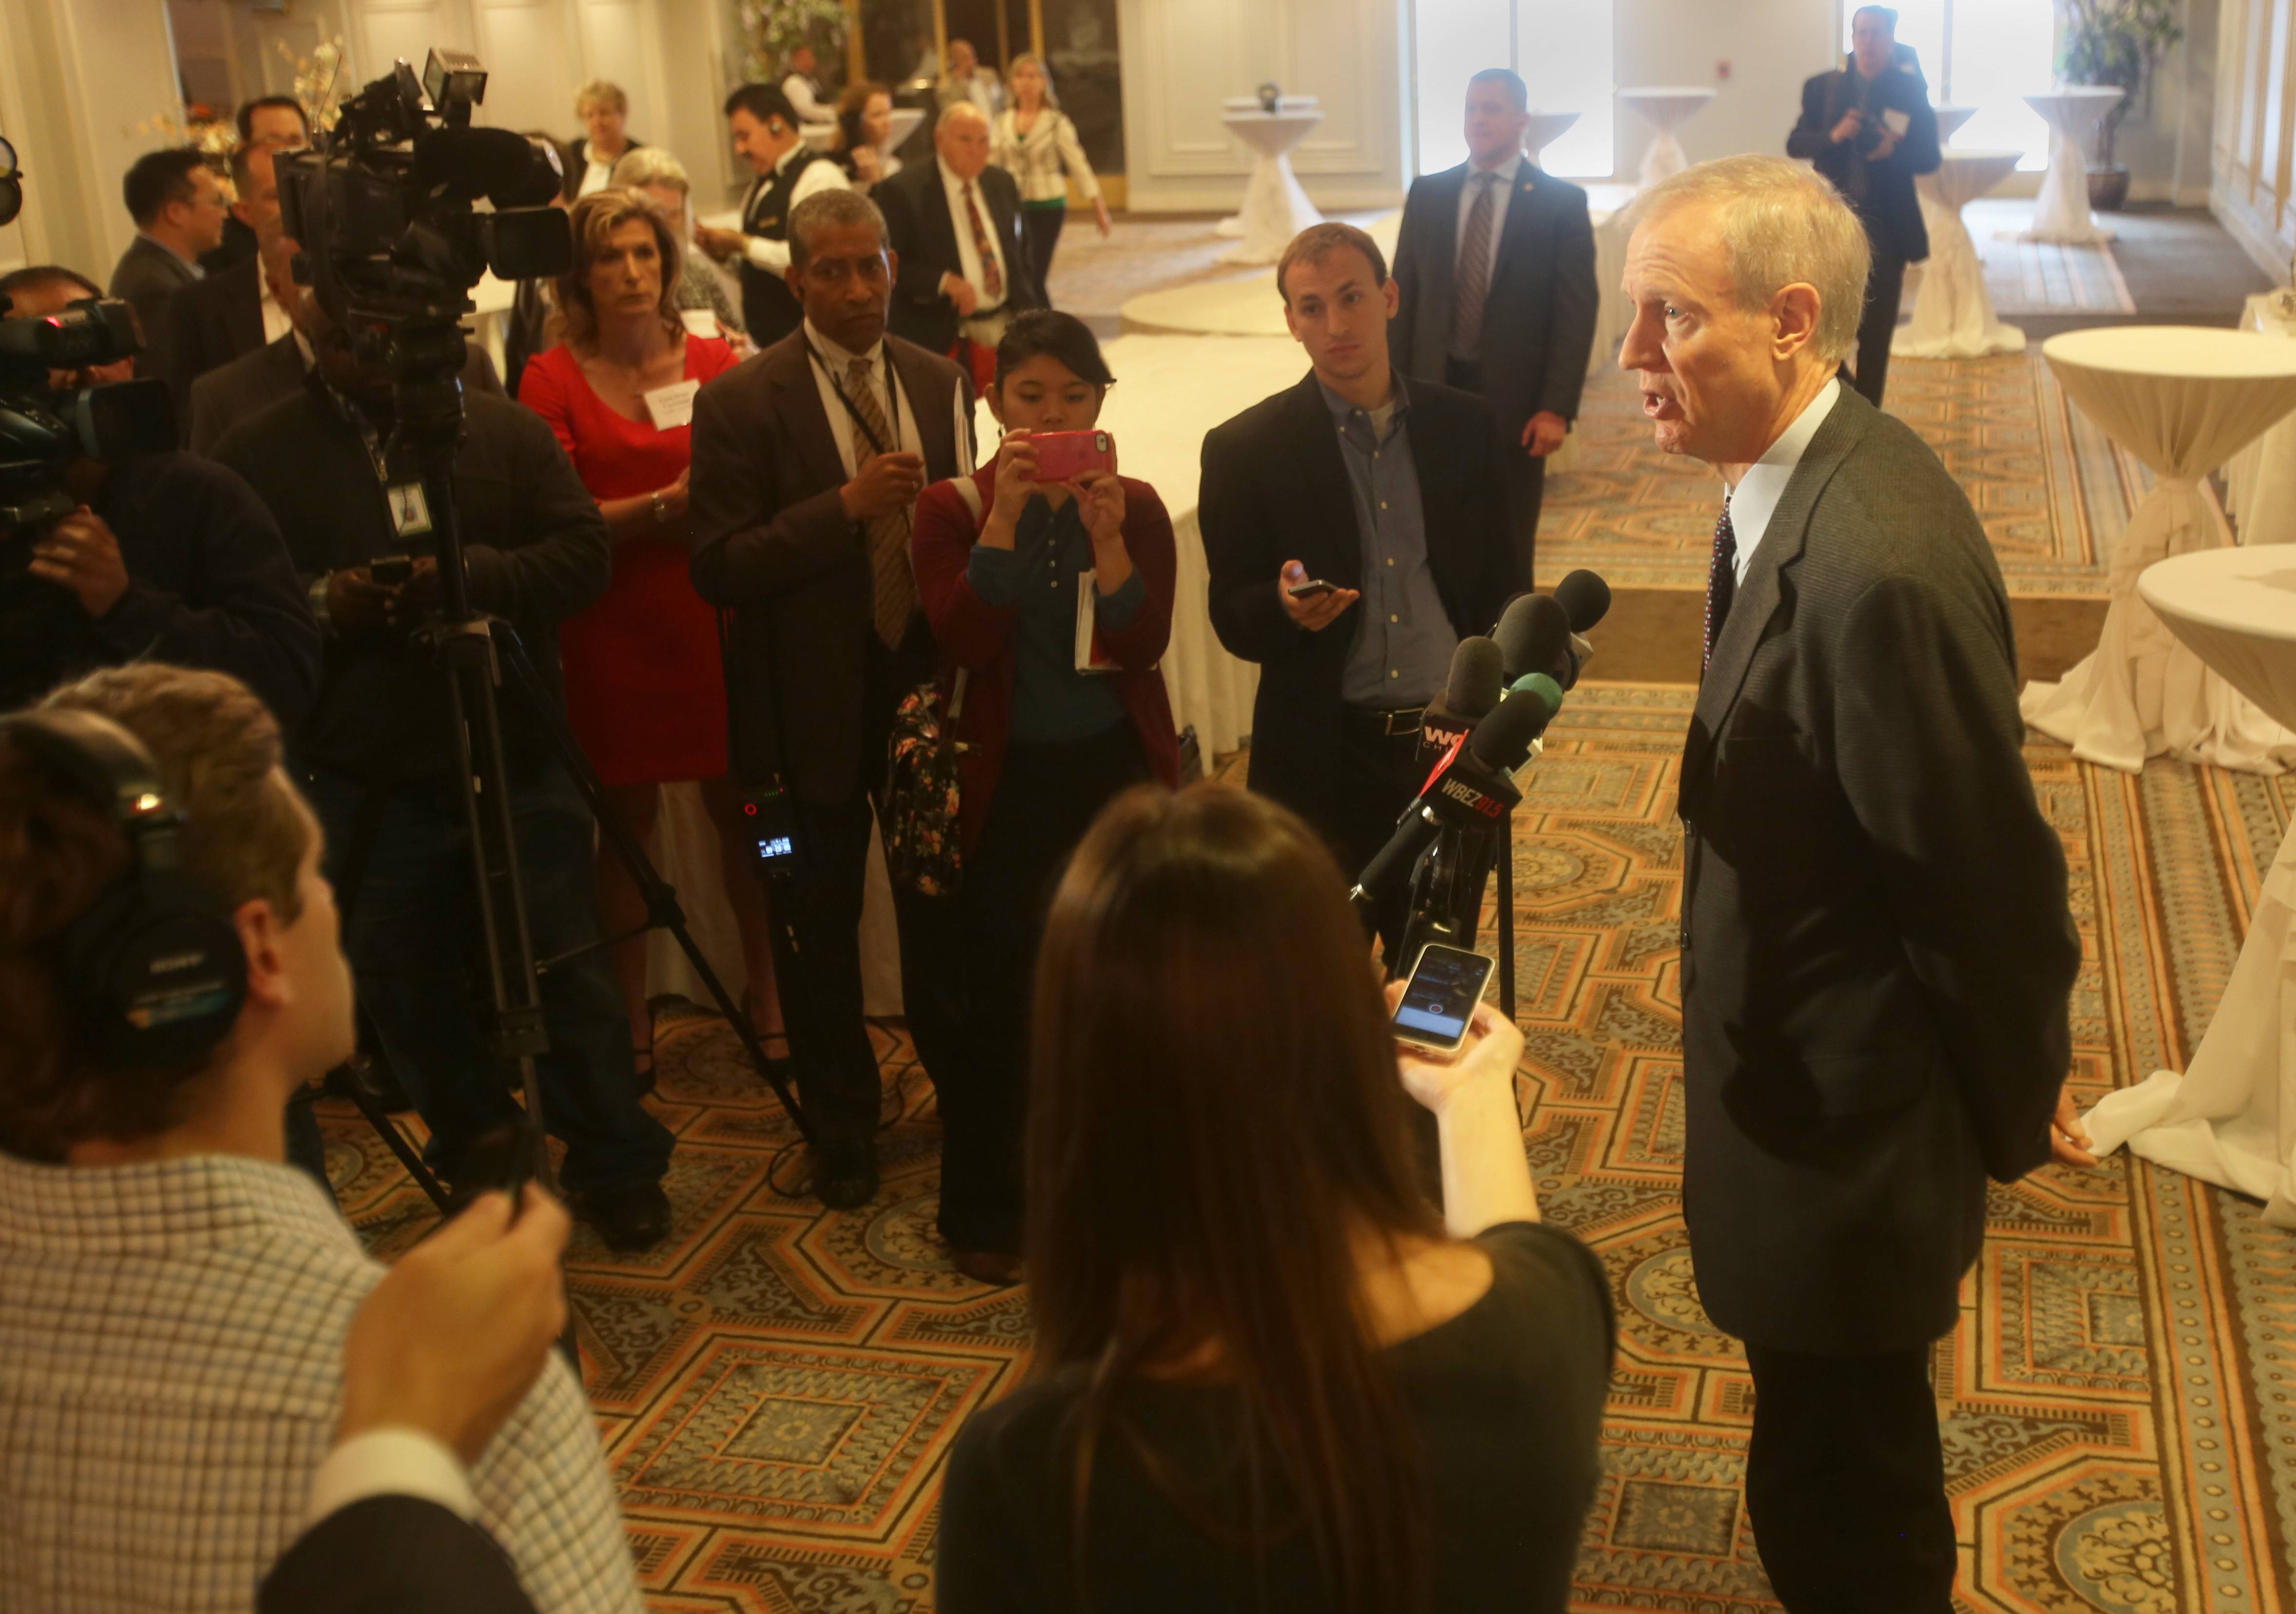 Gov. Bruce Rauner answers questions following his keynote speech at the 6th Annual DuPage County Regional Business Outlook breakfast.